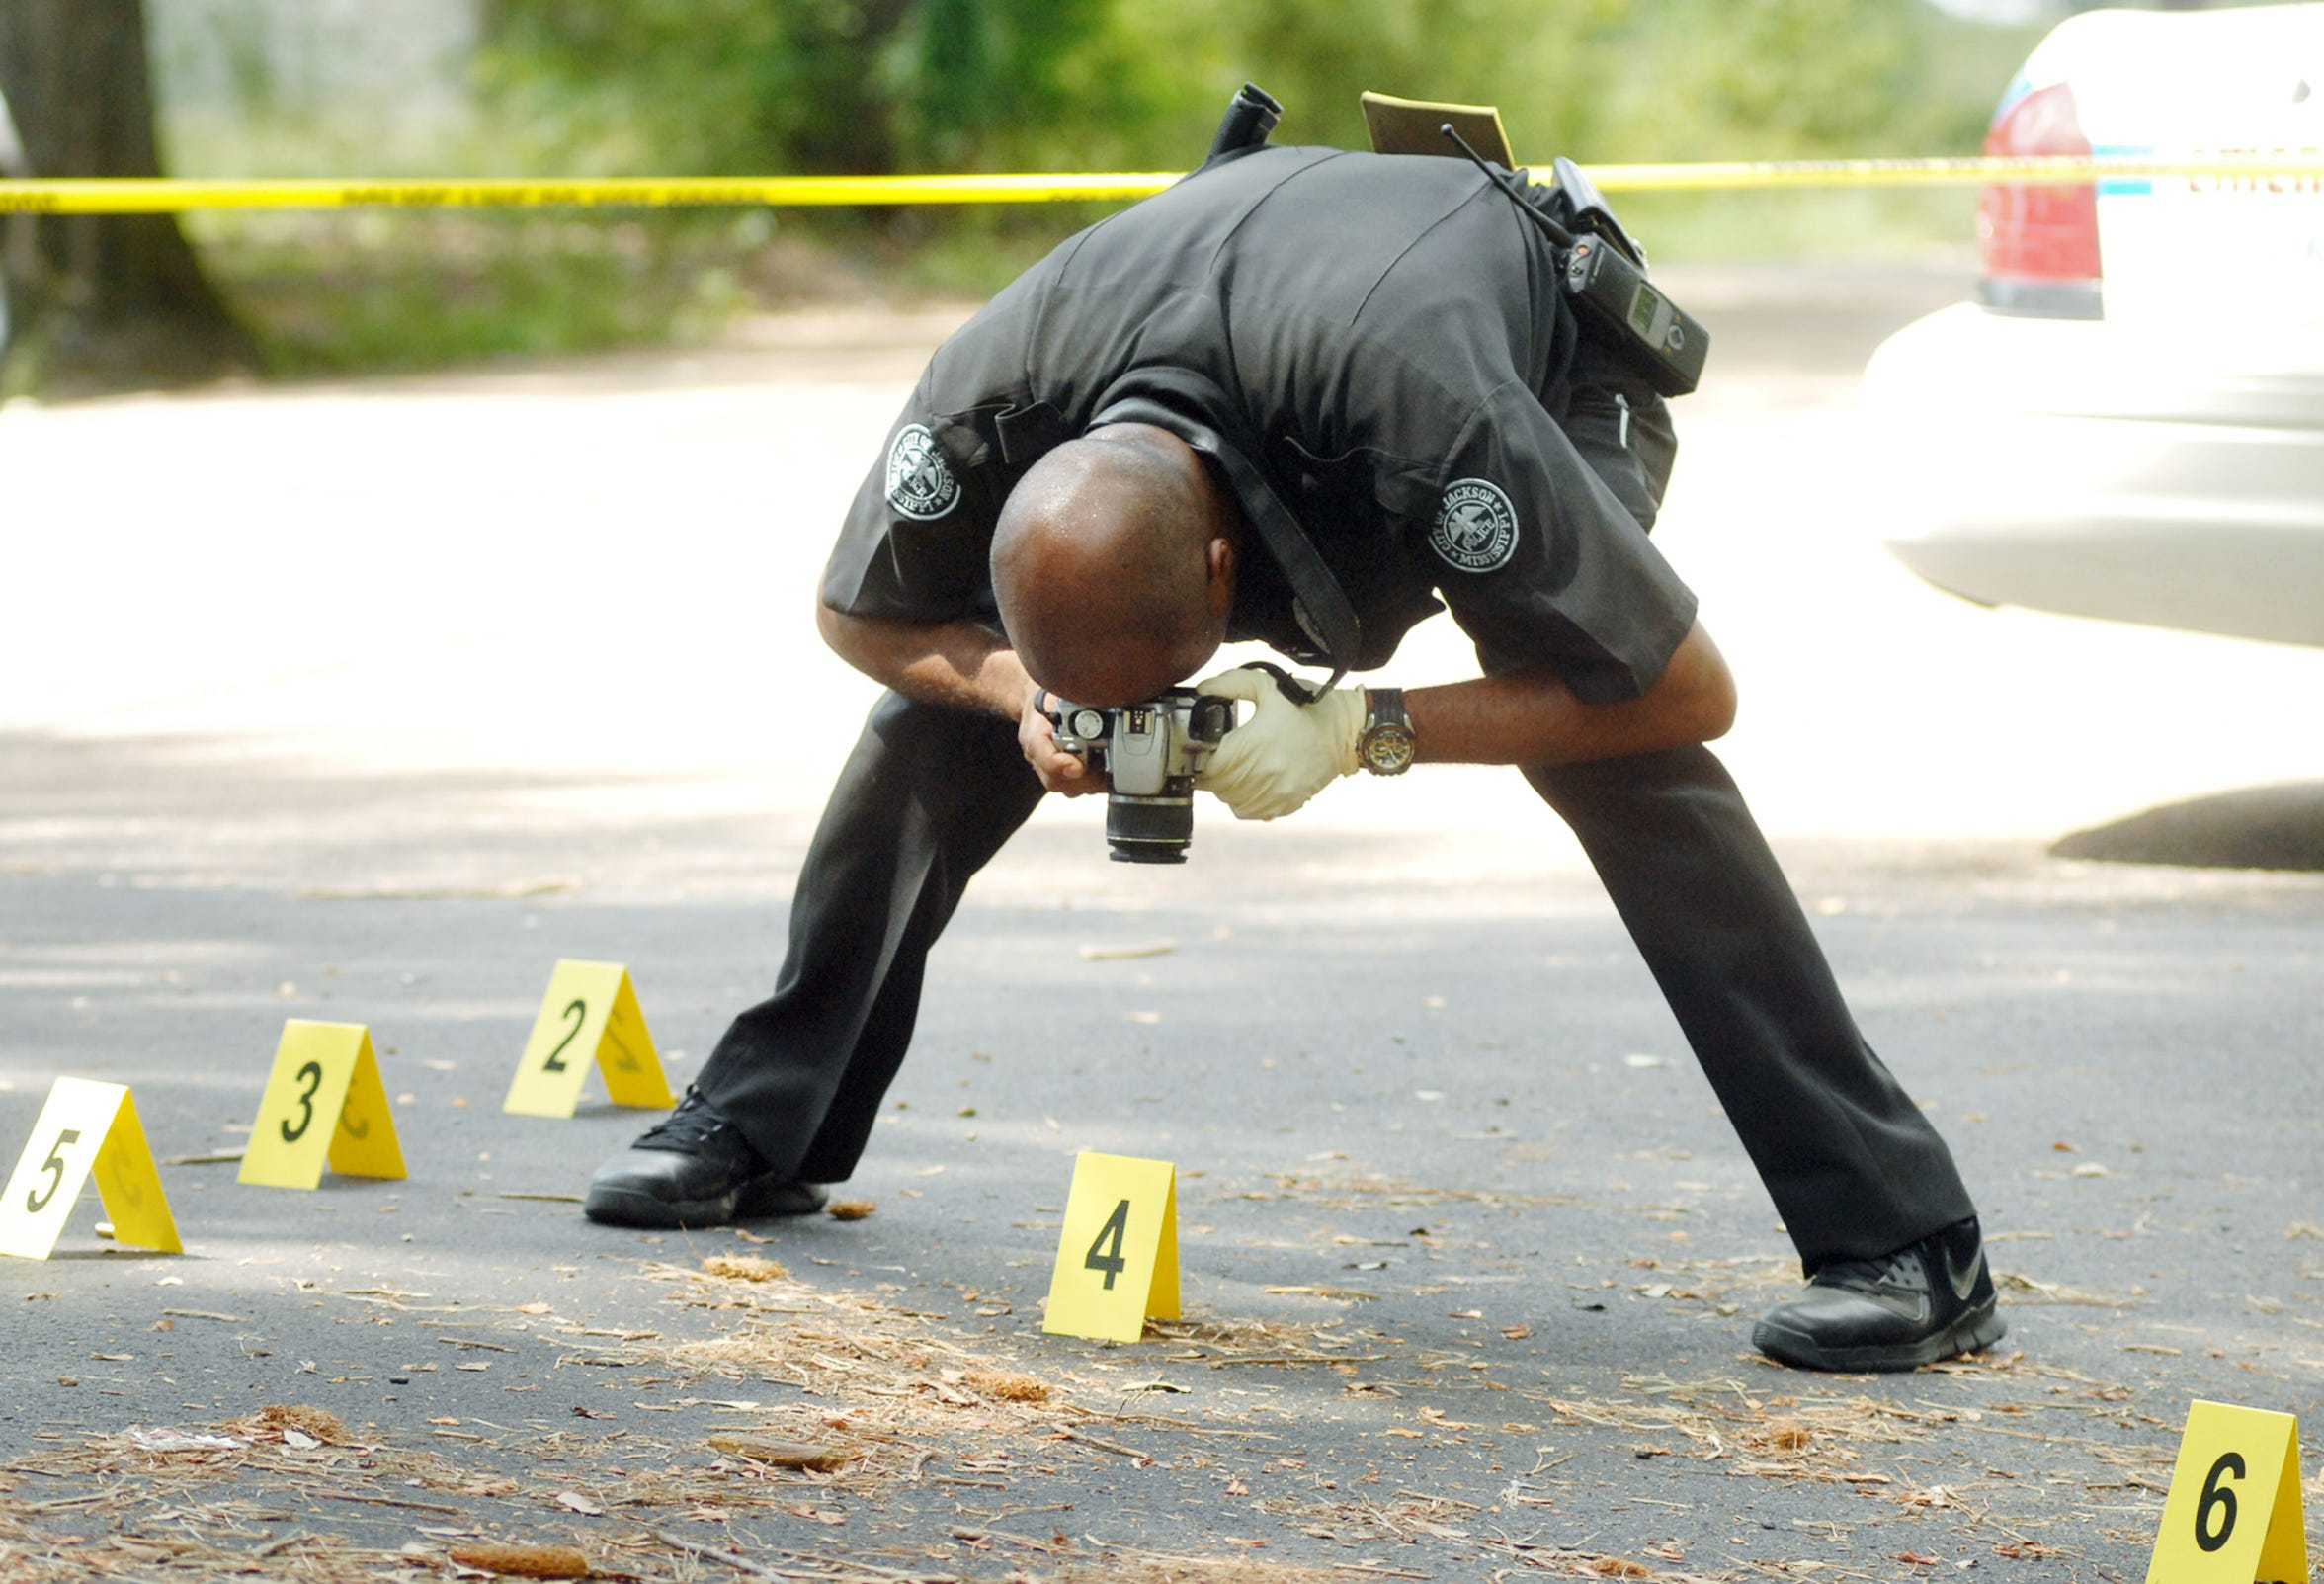 A crime scene investigator photographs shell casings.